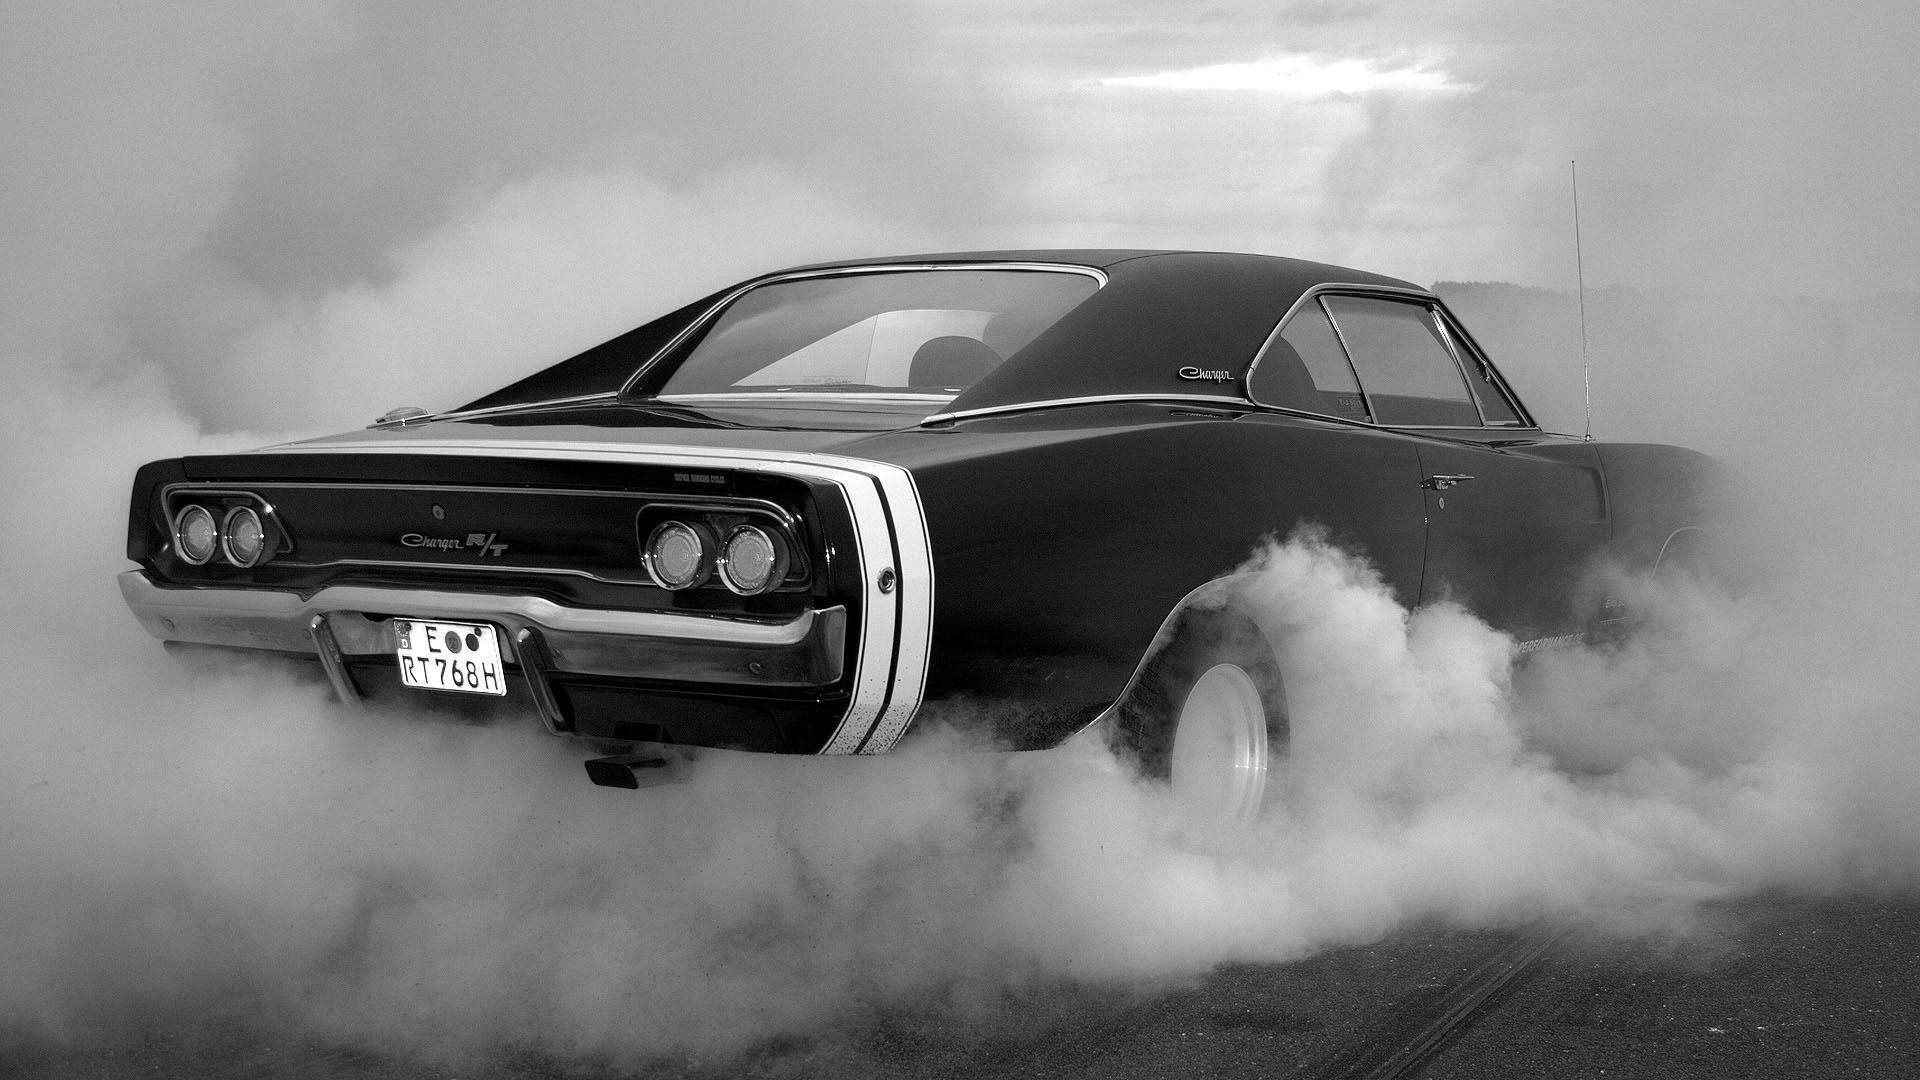 69 Dodge Charger Wallpapers 1920x1080